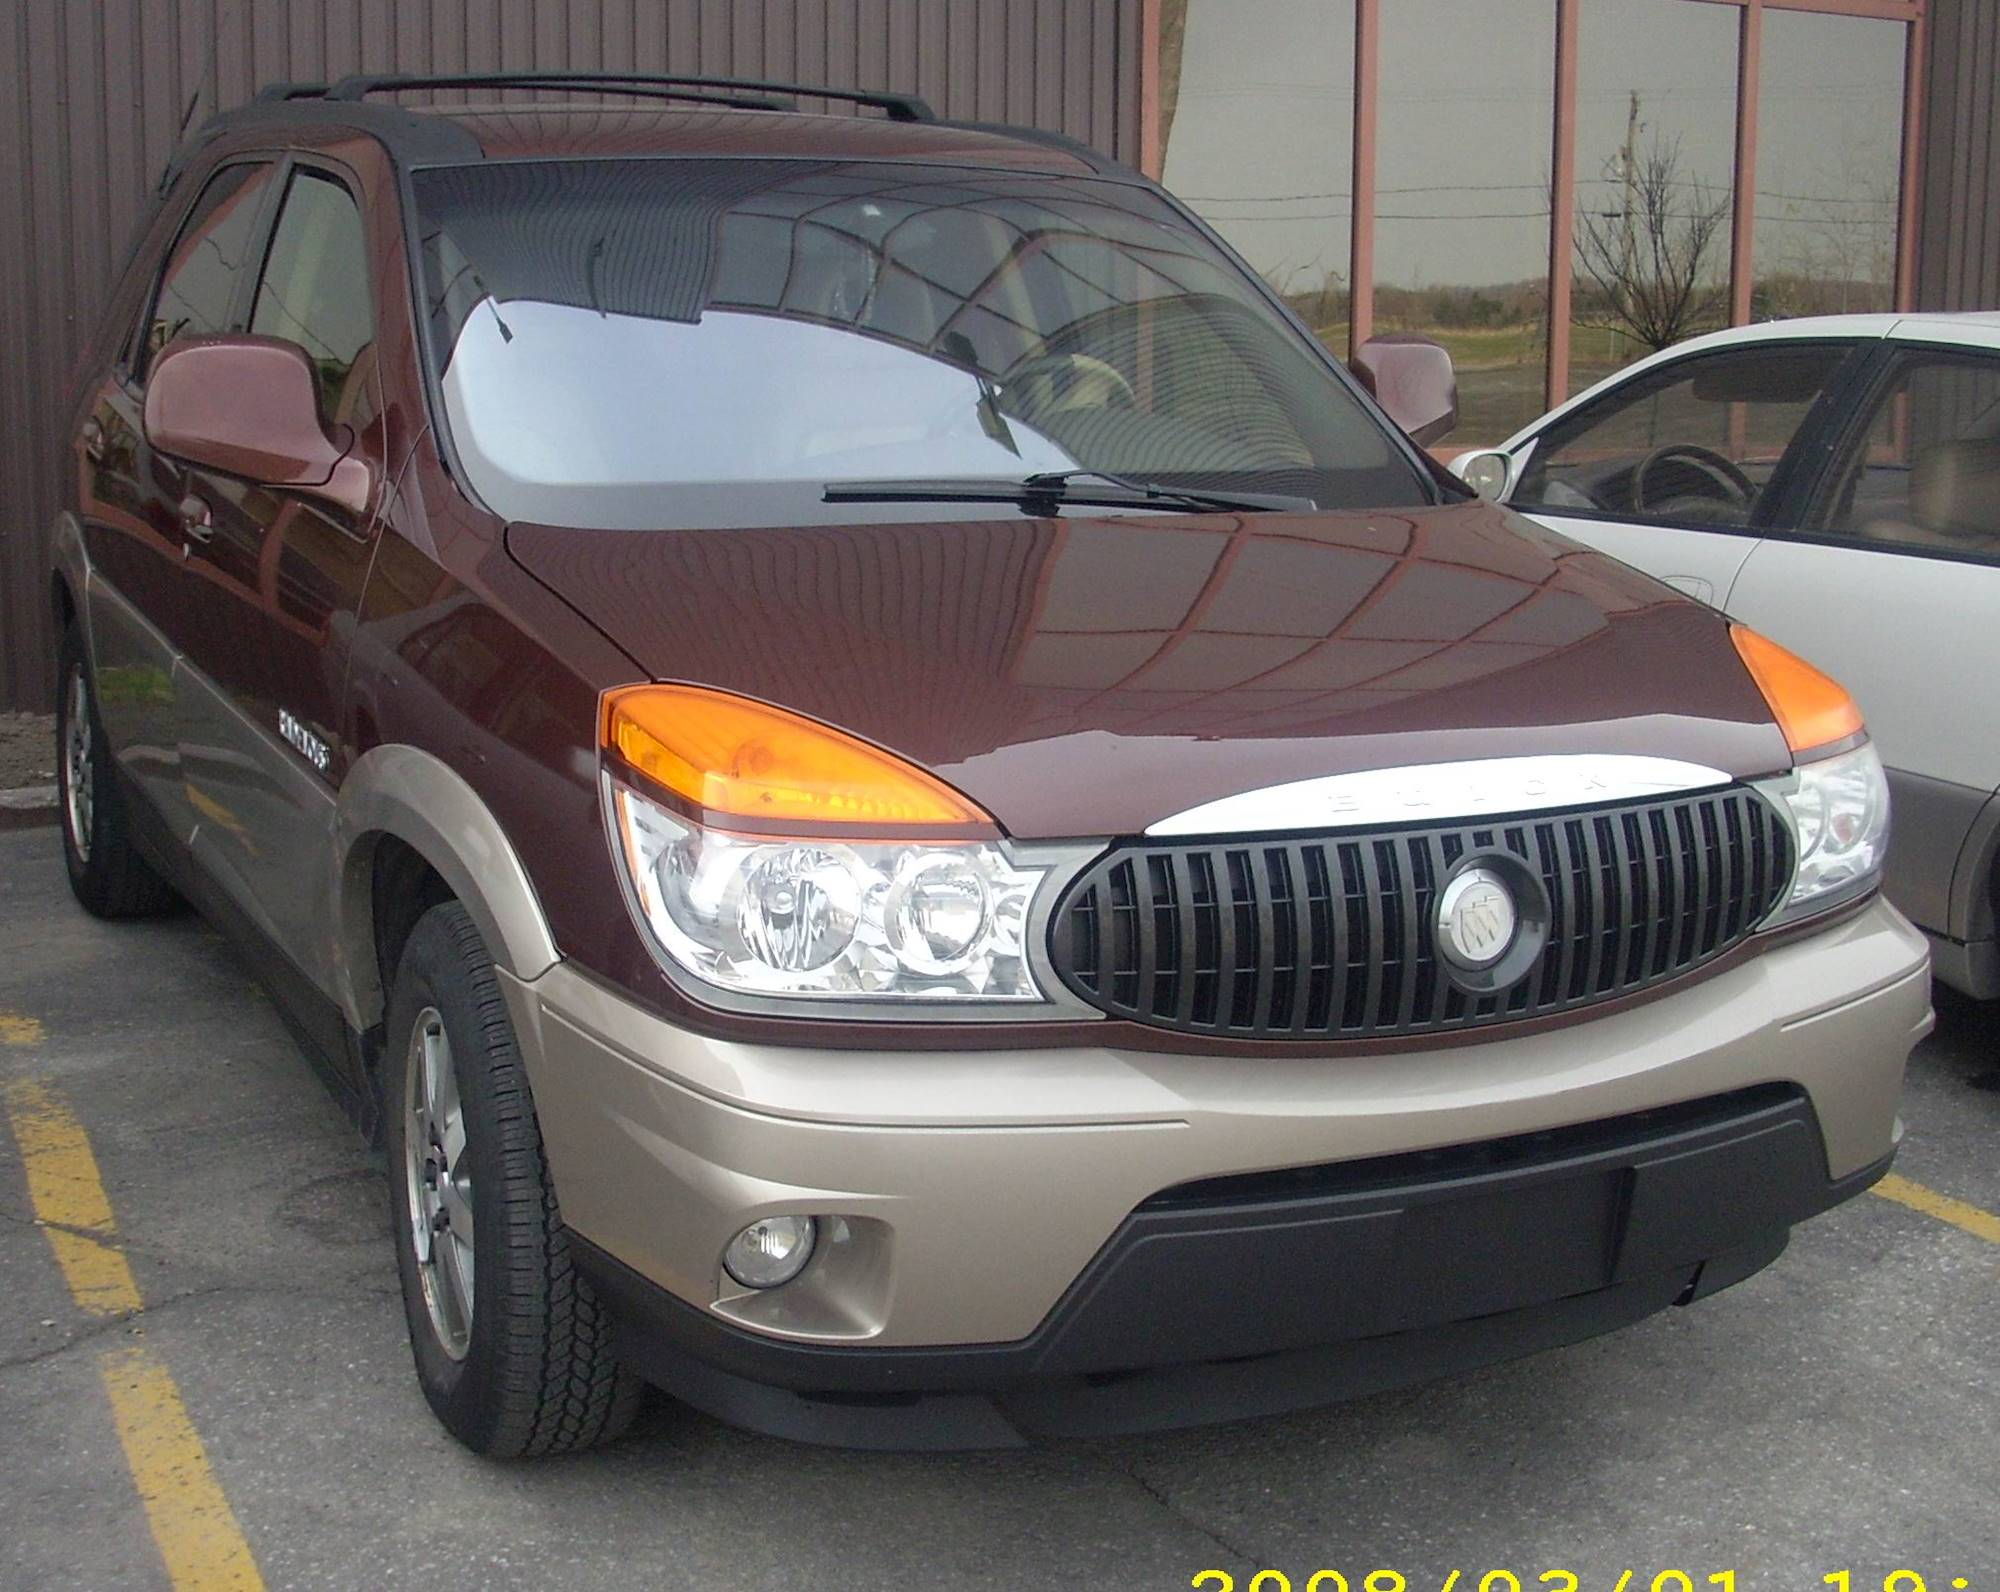 2002 buick rendezvous cx 4dr suv 3 4l v6 auto. Black Bedroom Furniture Sets. Home Design Ideas